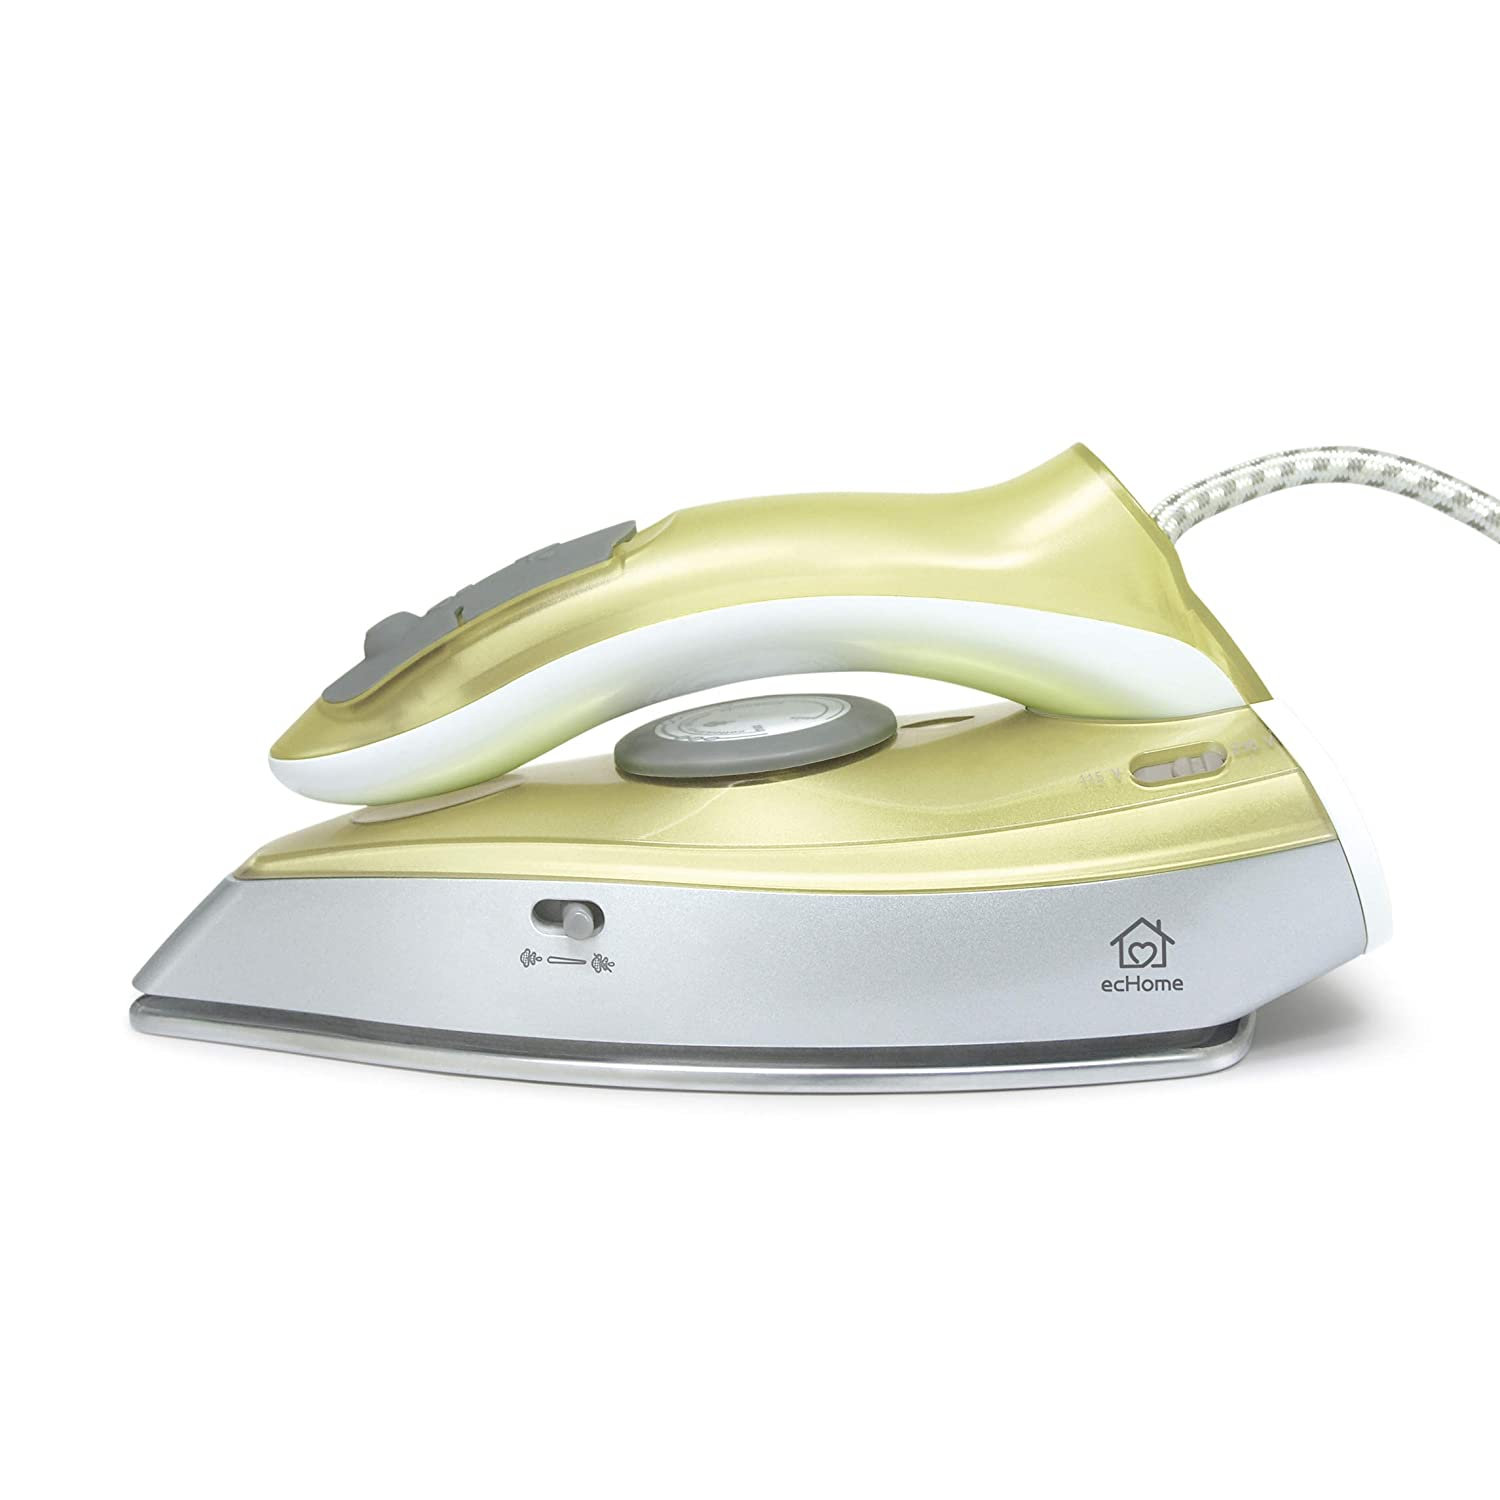 ecHome Foldable Handle Steam Iron 1100W Dual Voltage Travel Small Easy Folding